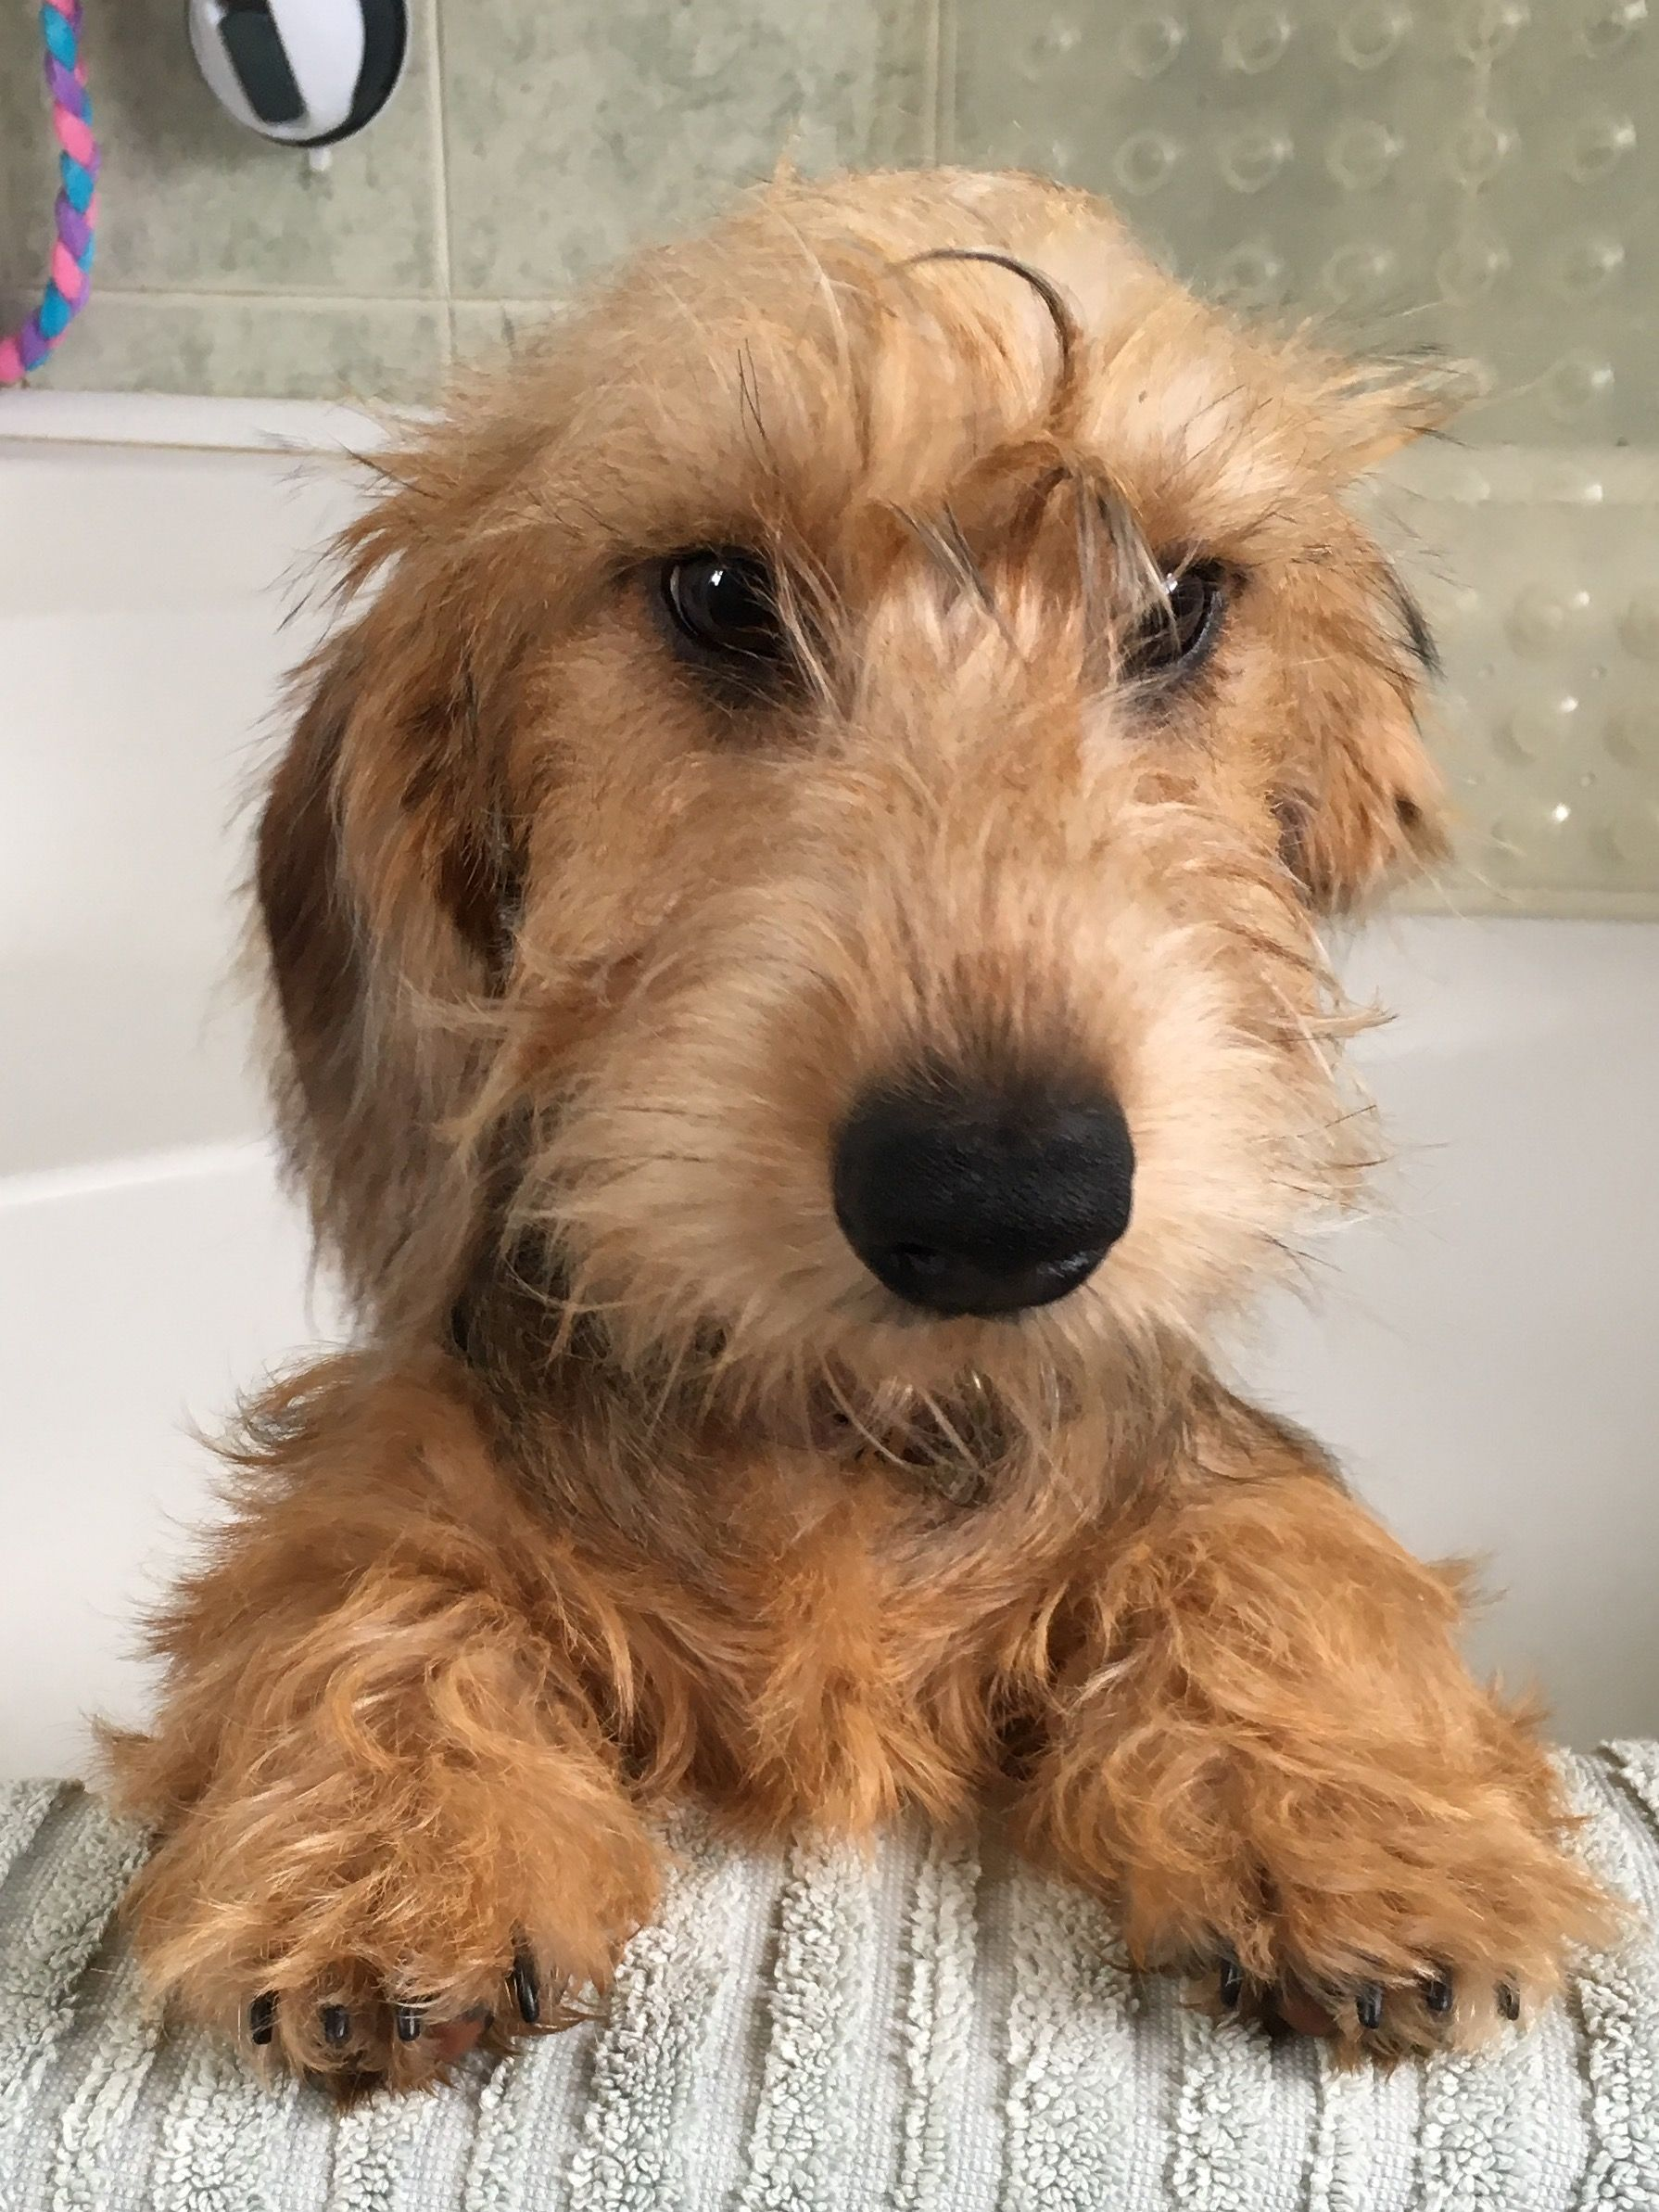 Dudley, just out of the bath! Wire haired dachshund